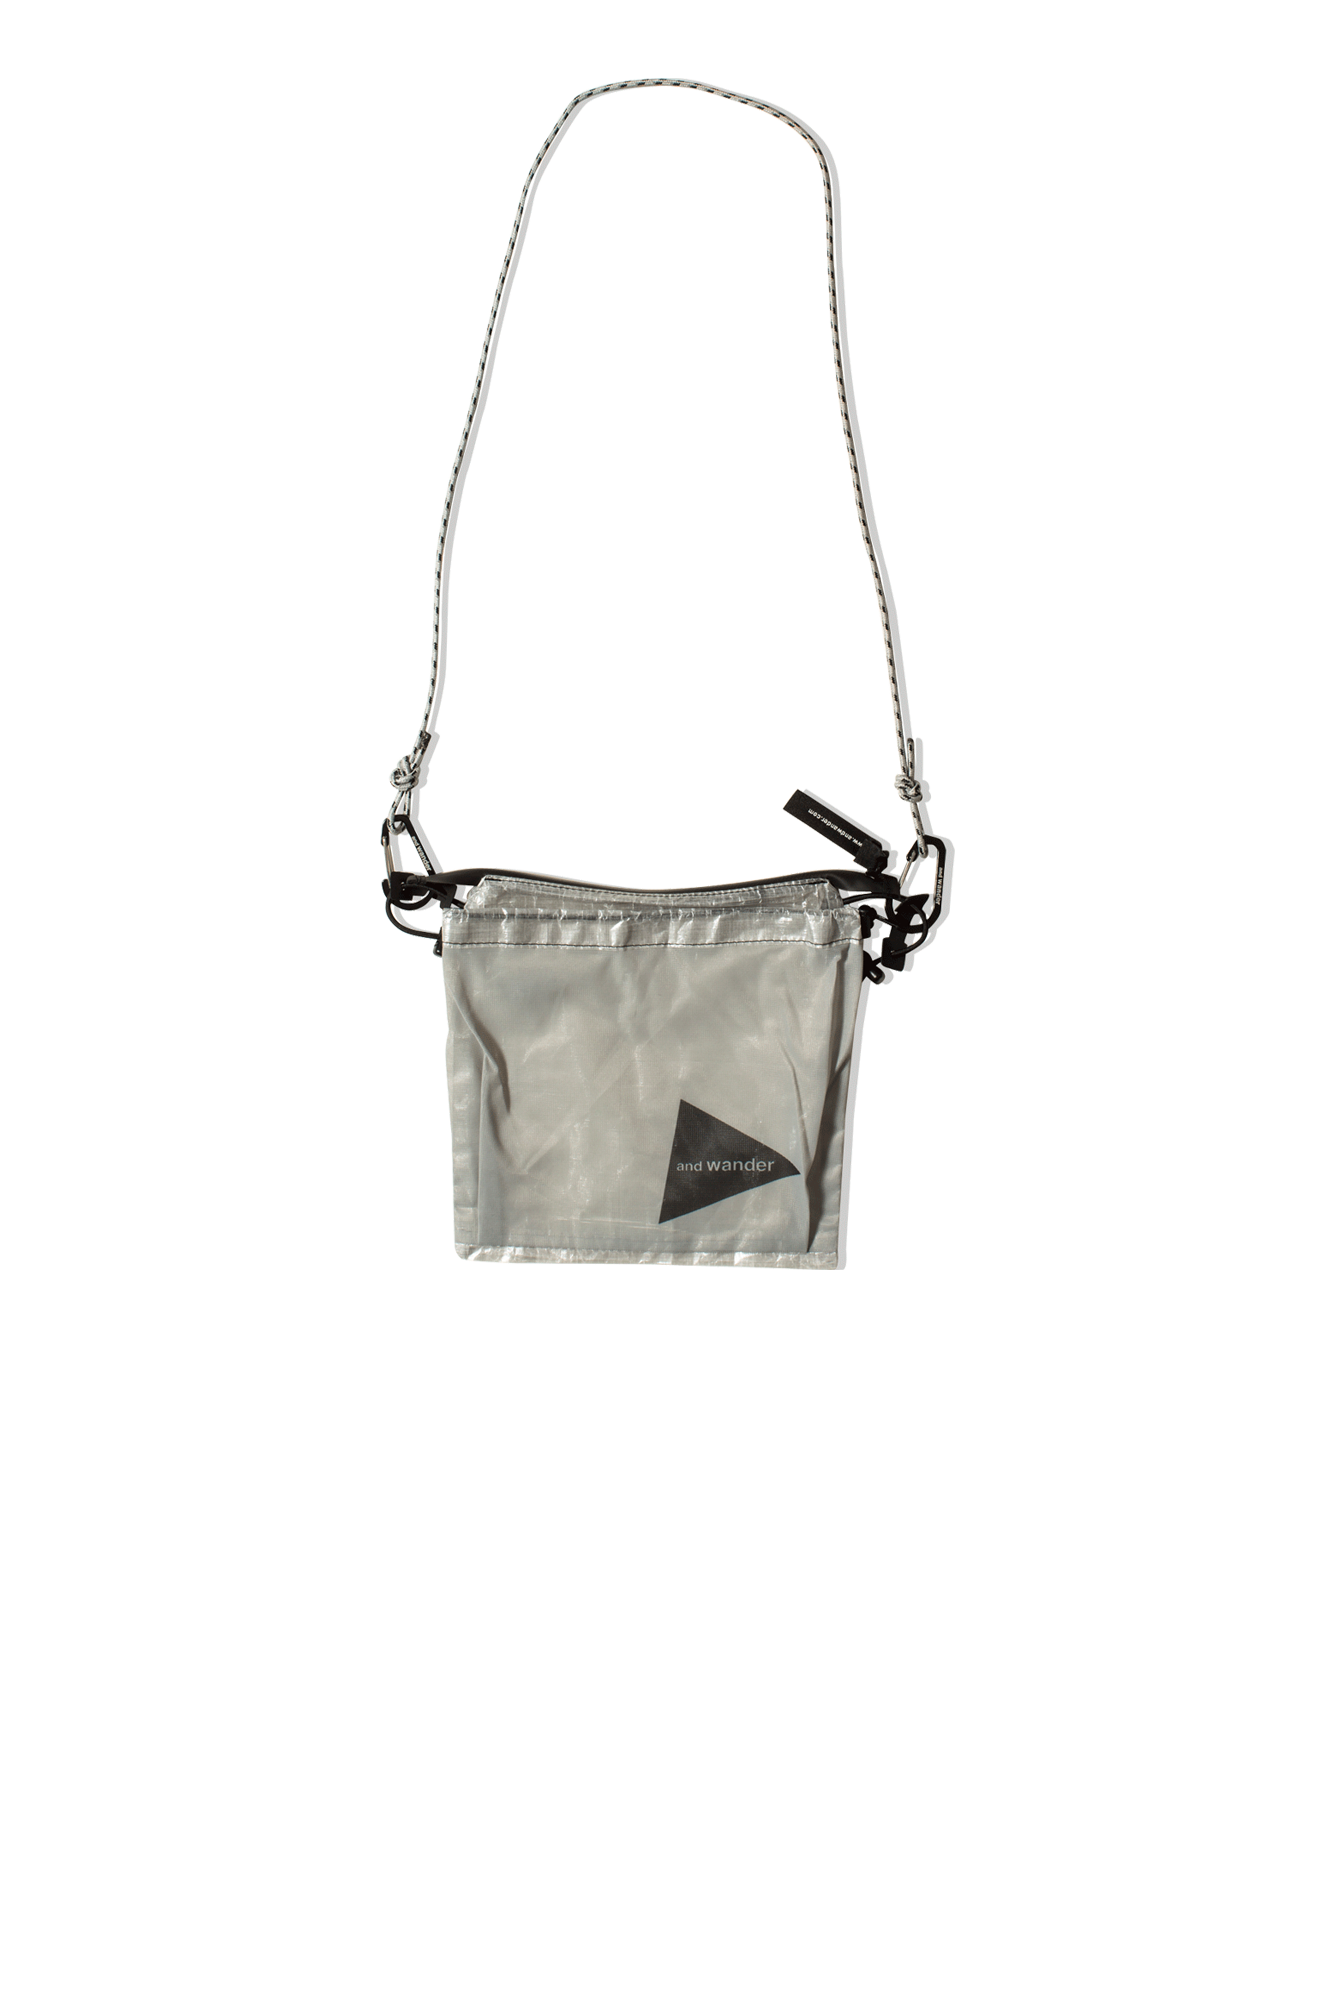 And Wander Shoulder bags Dyneema Sacoche White 5740975527#000#WHT#OS - One Block Down